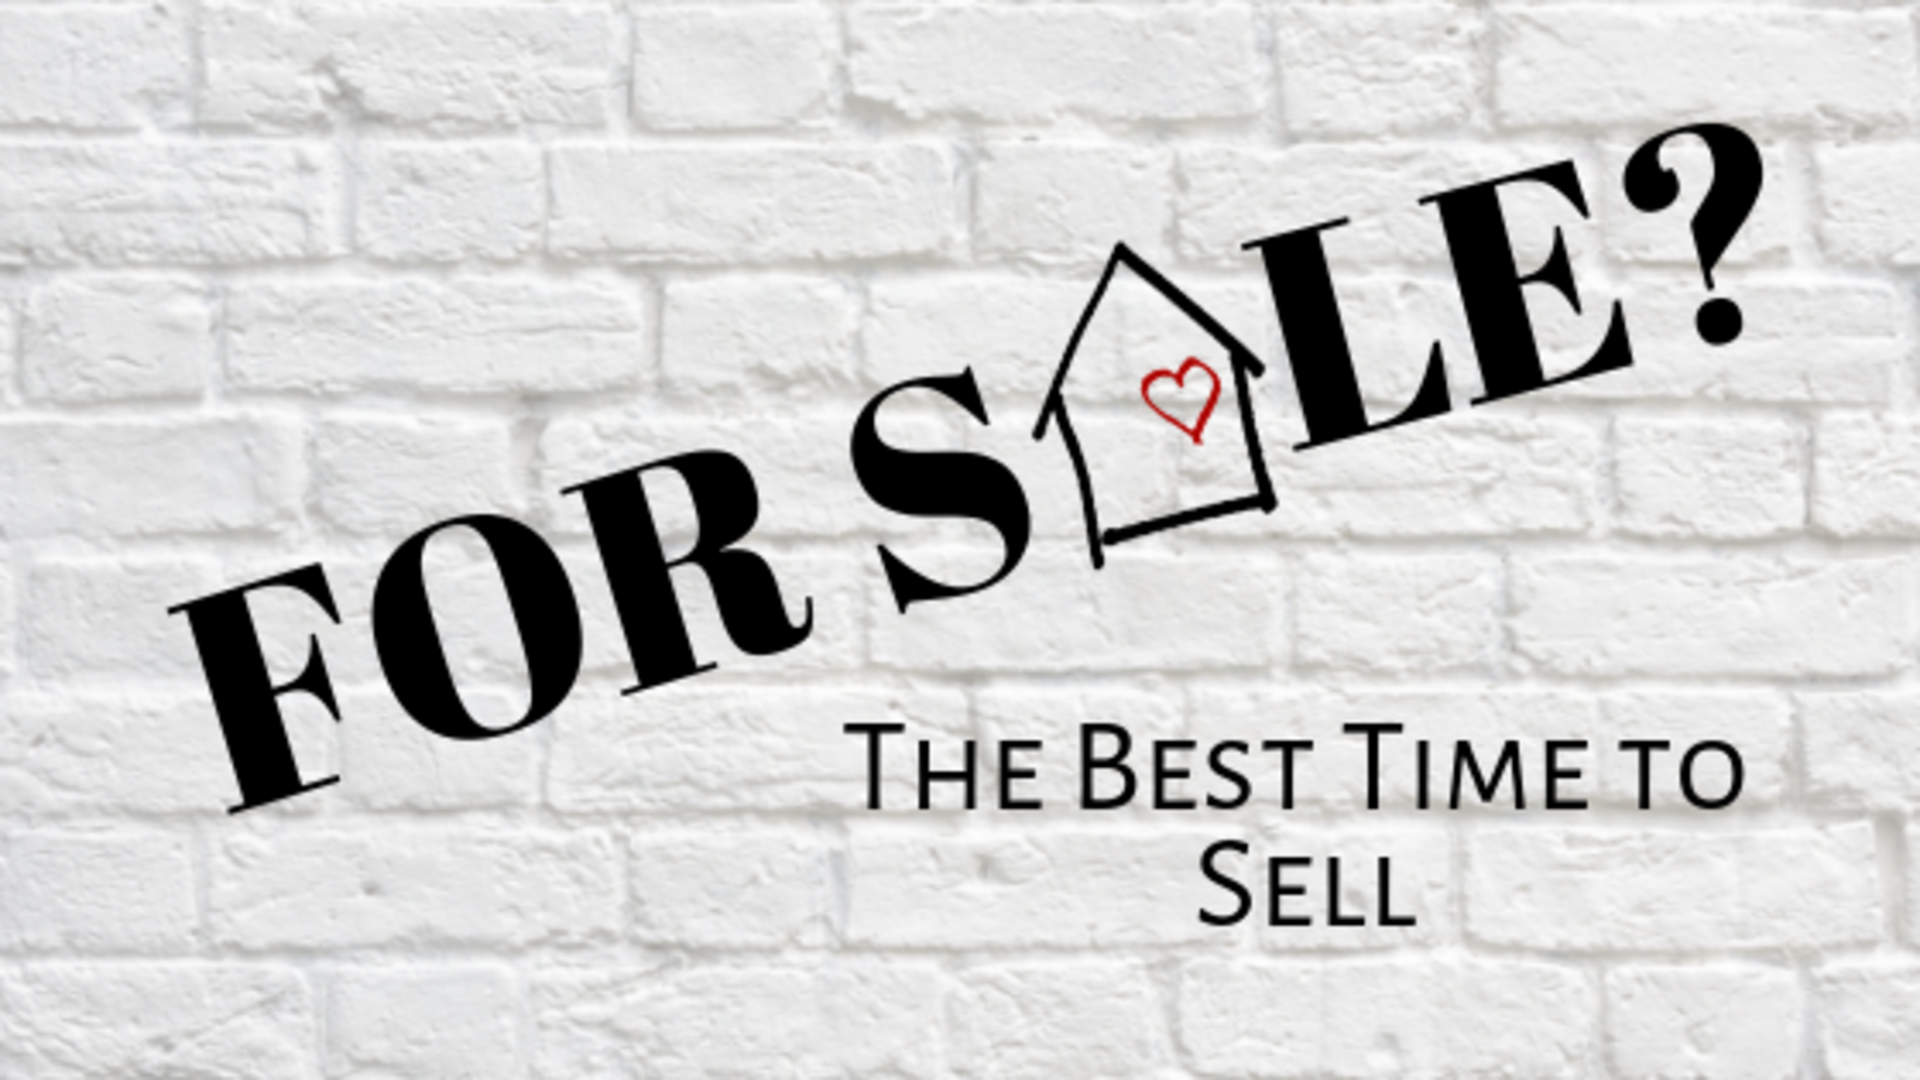 The Best Time to Sell